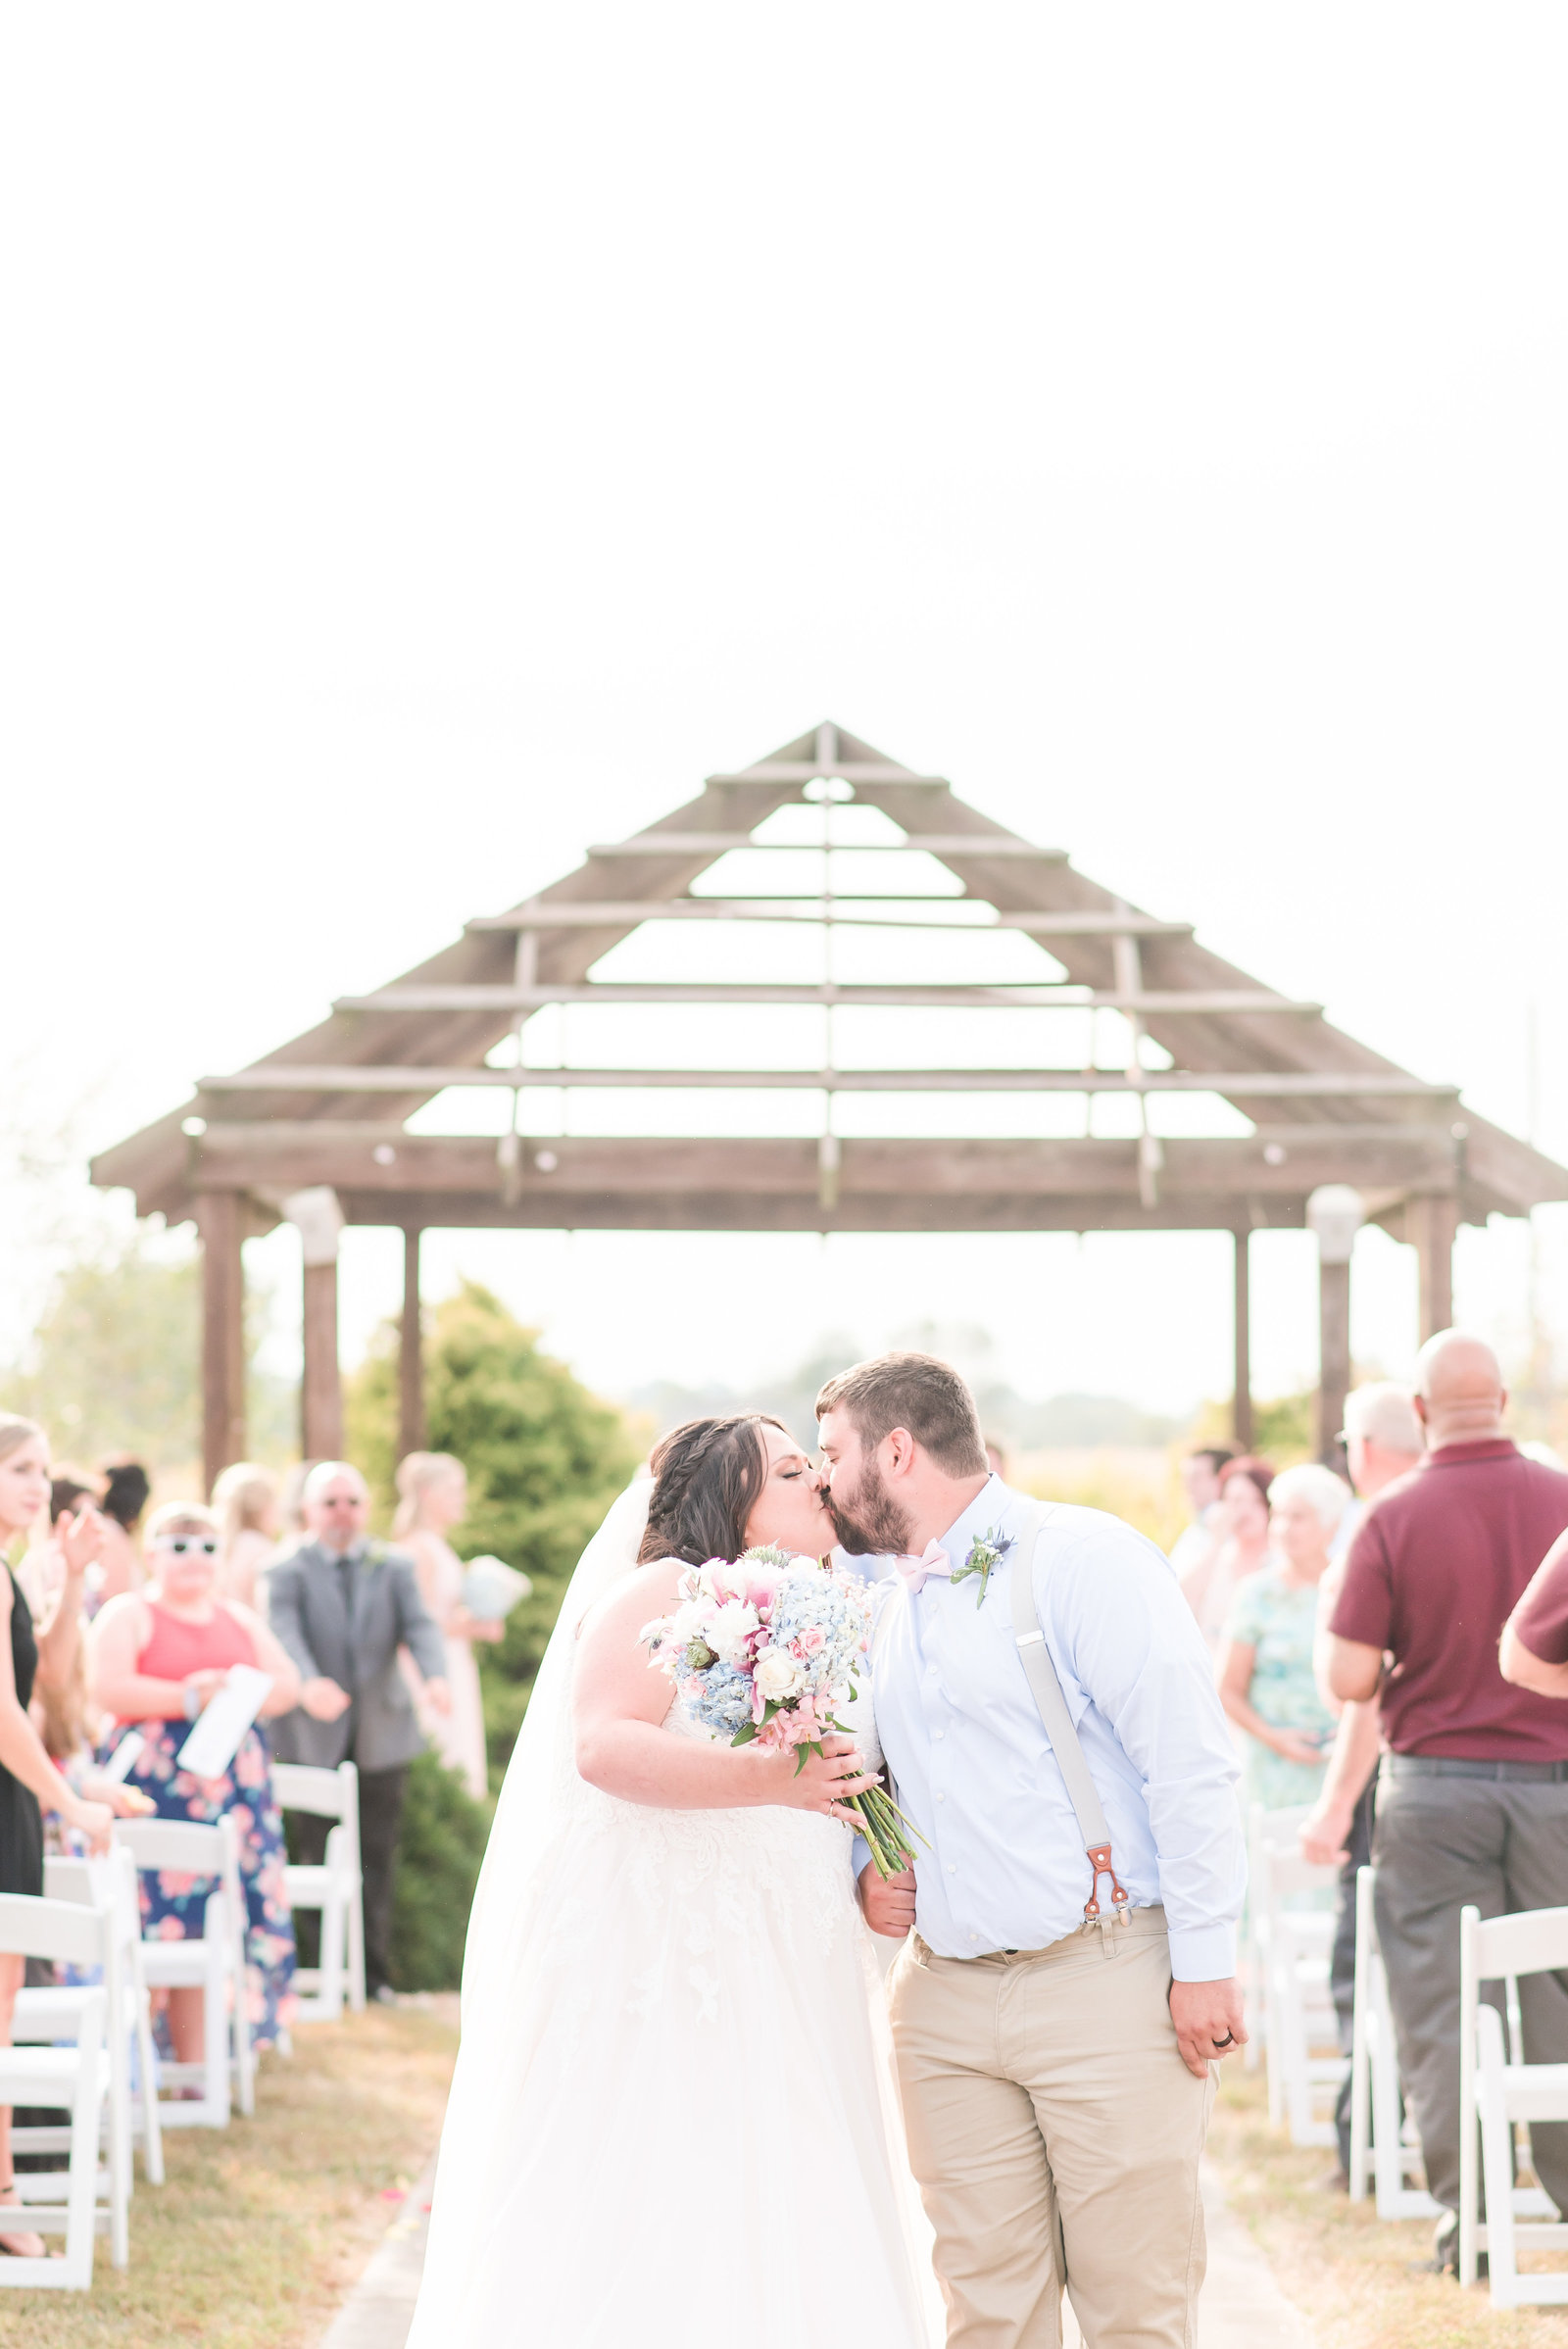 Outdoor Wedding at Cornerstone Hall